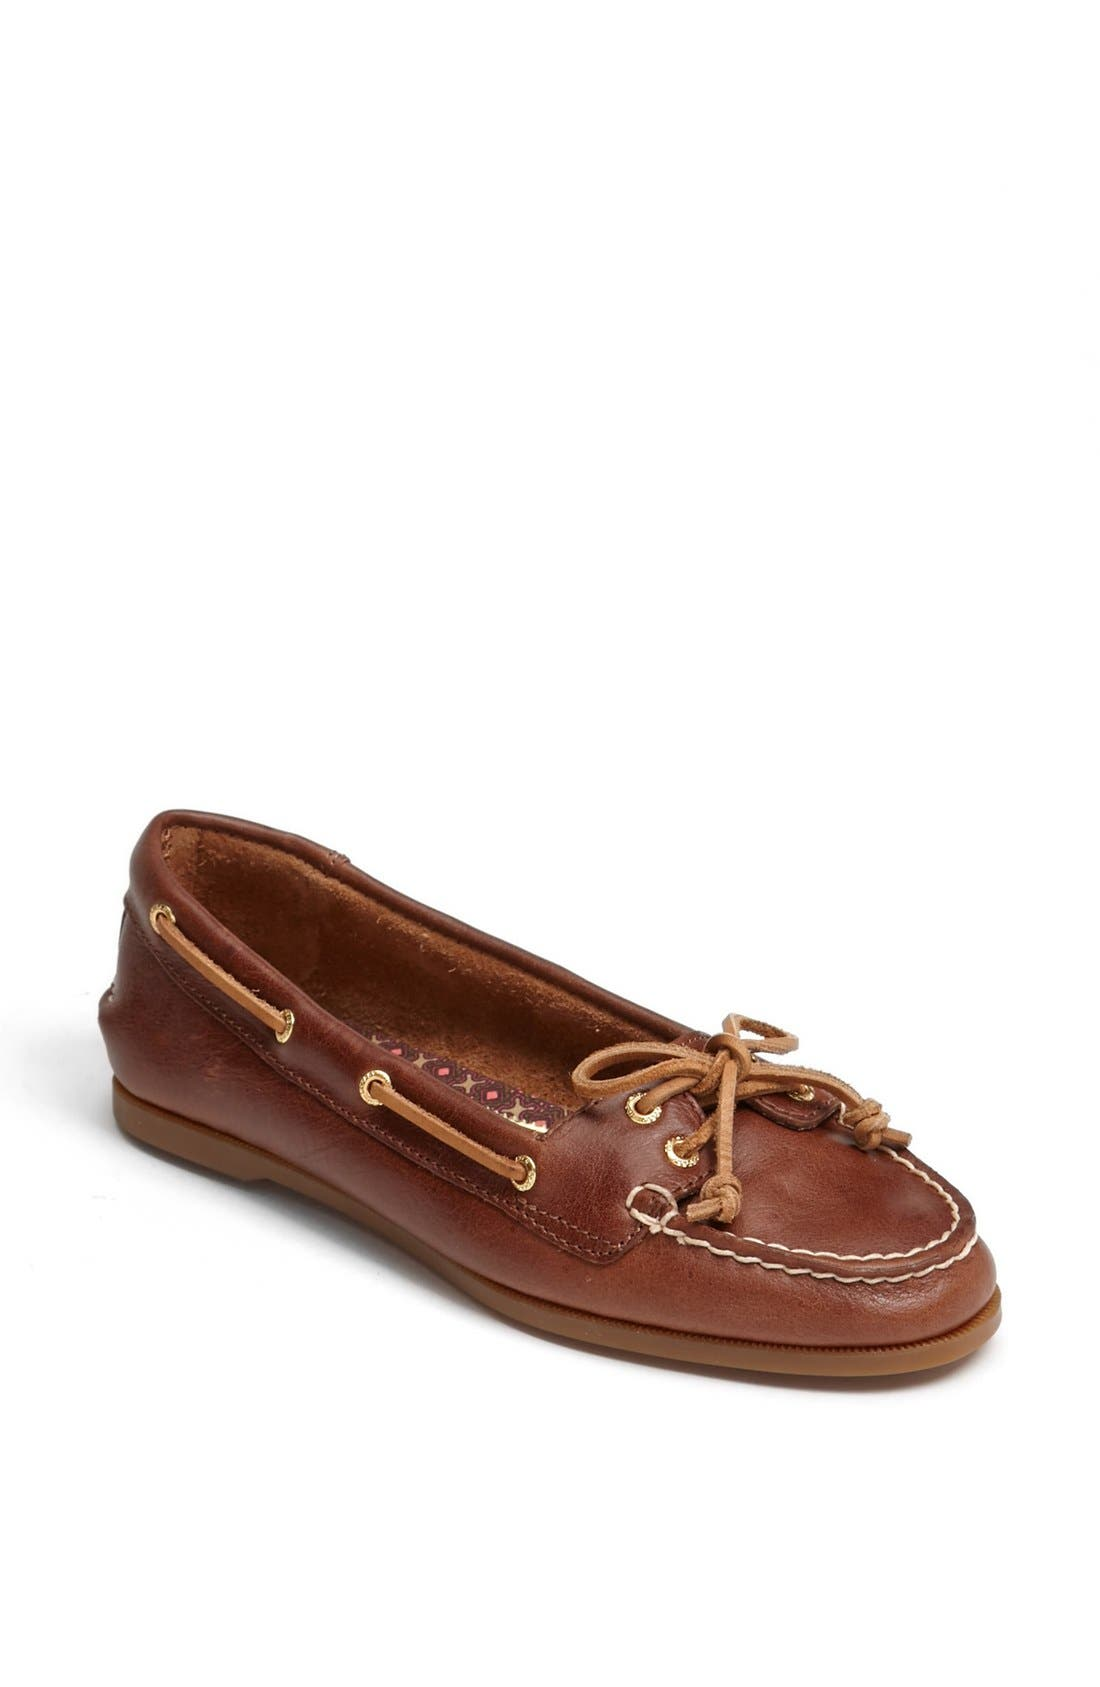 Main Image - Sperry 'Audrey' Boat Shoe